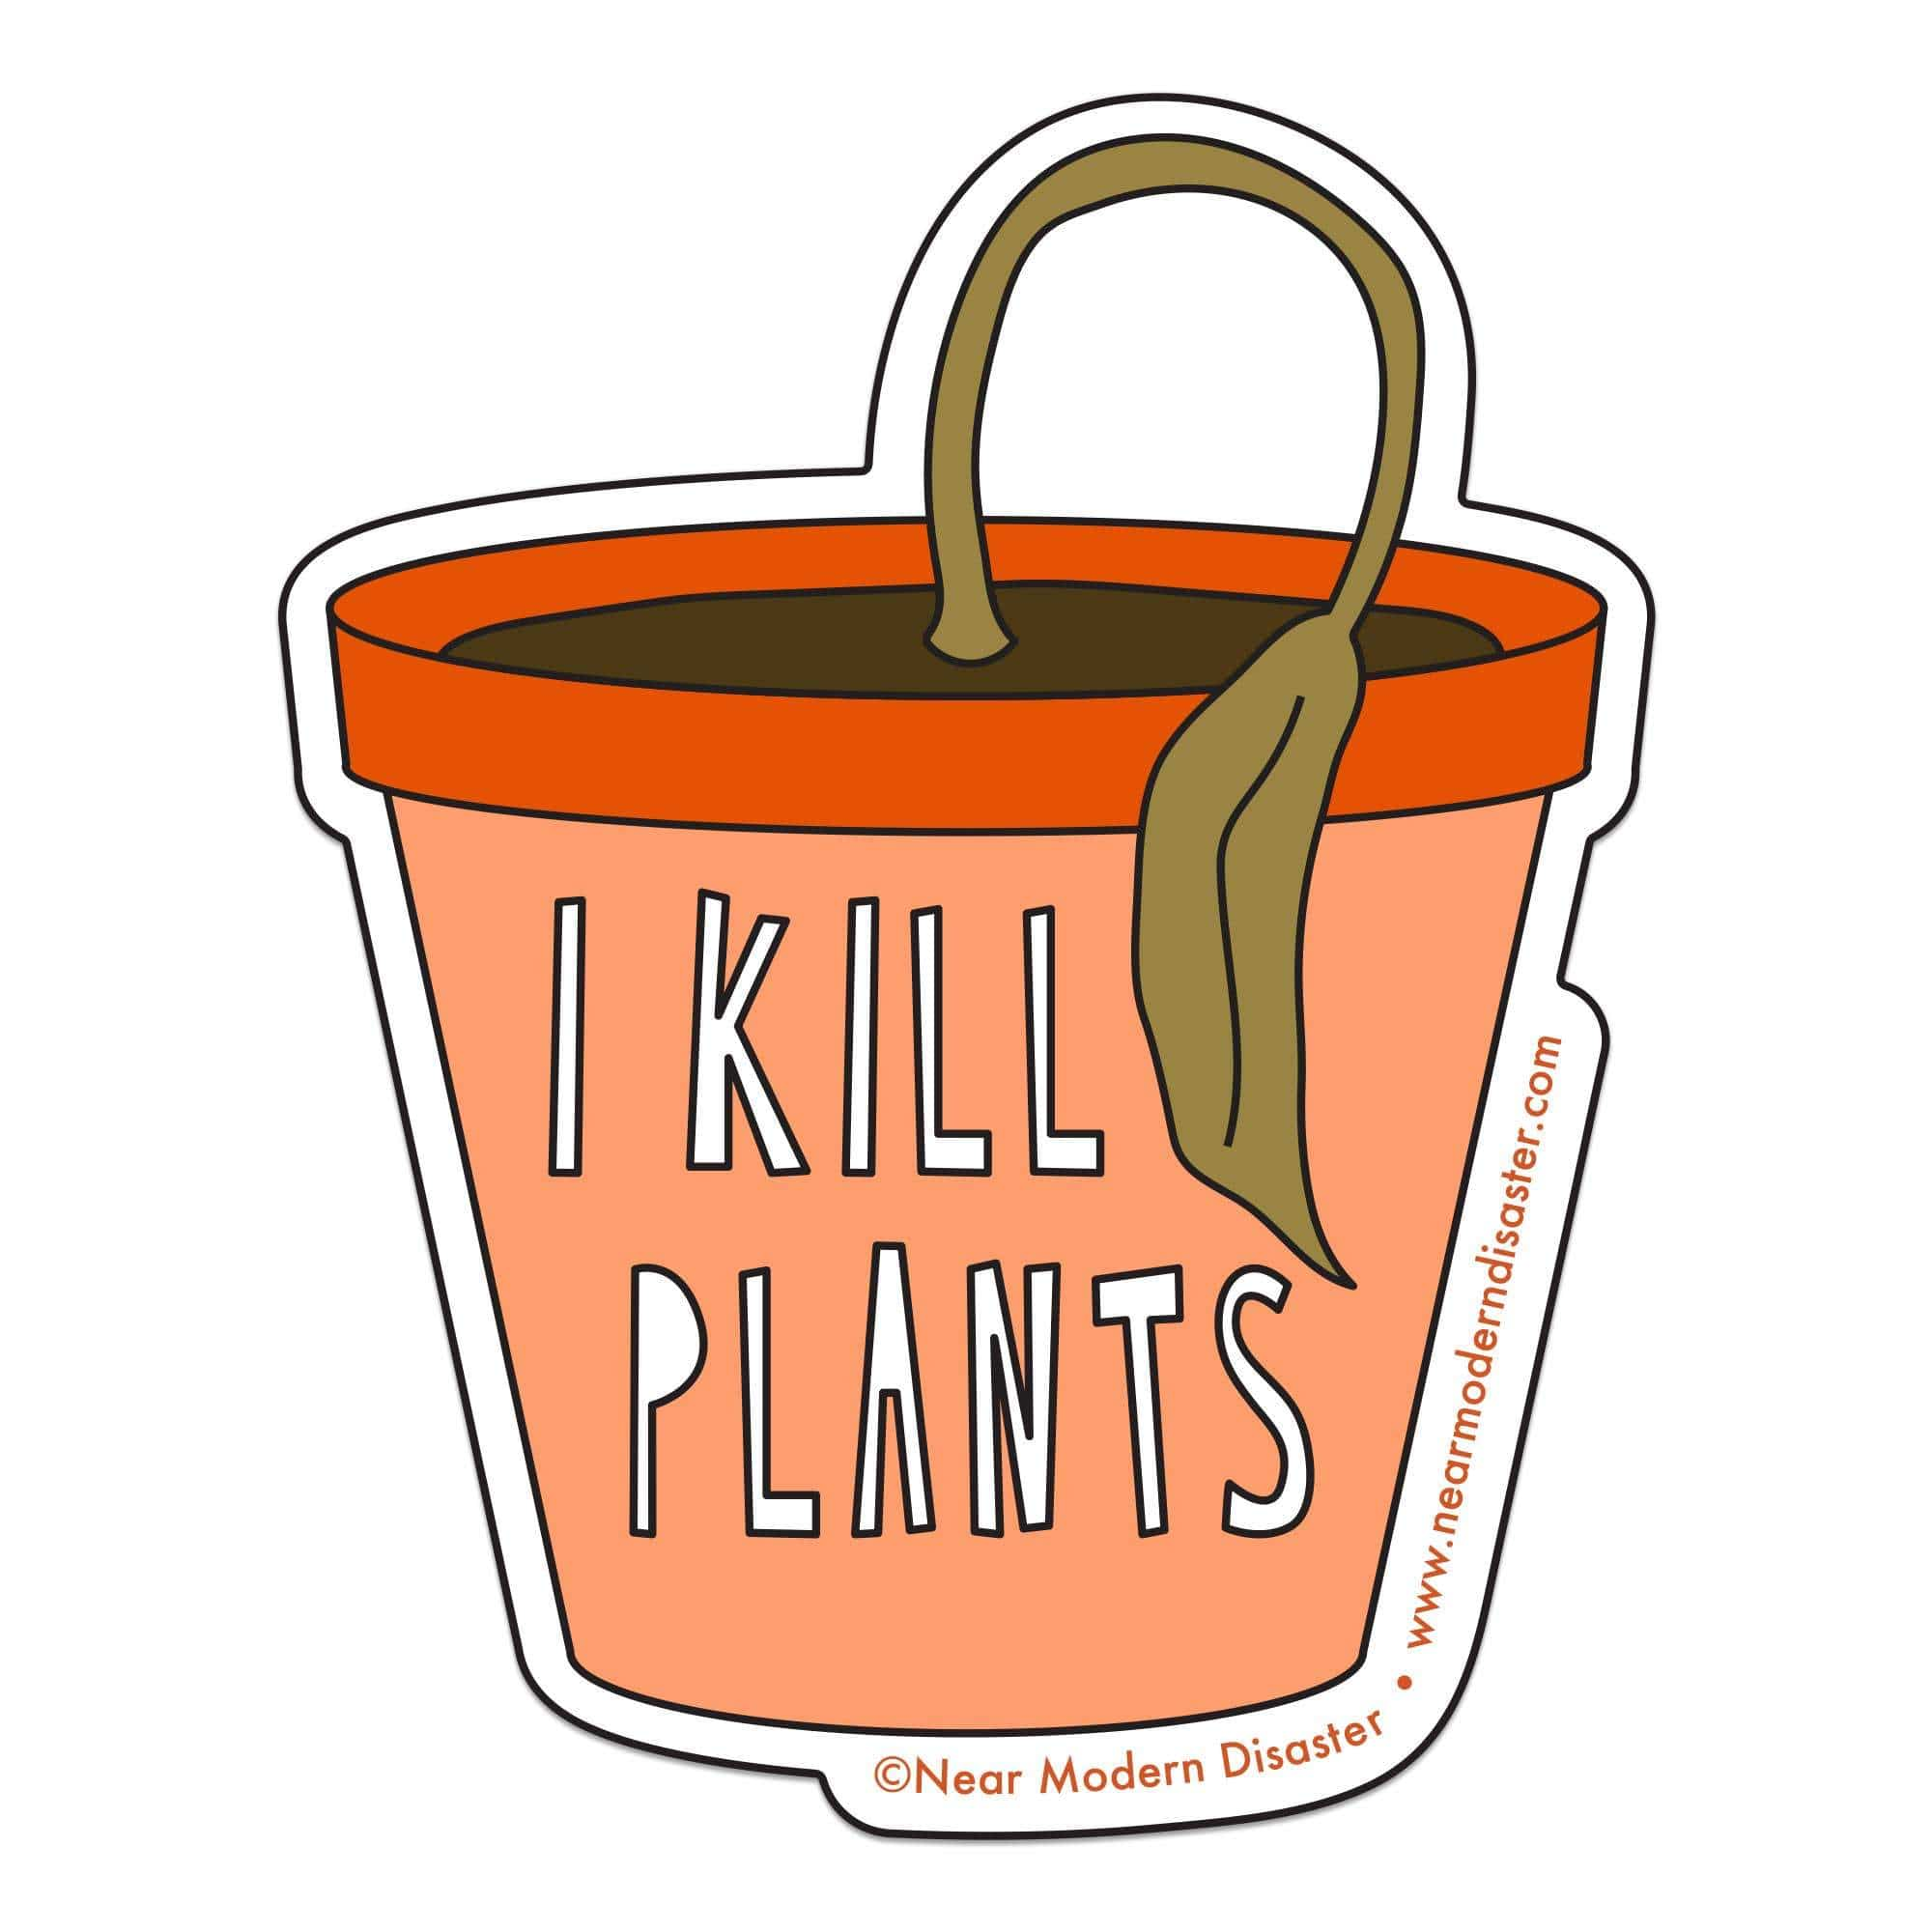 "I Kill Plants - 3"" vinyl sticker - Urban Sprouts"